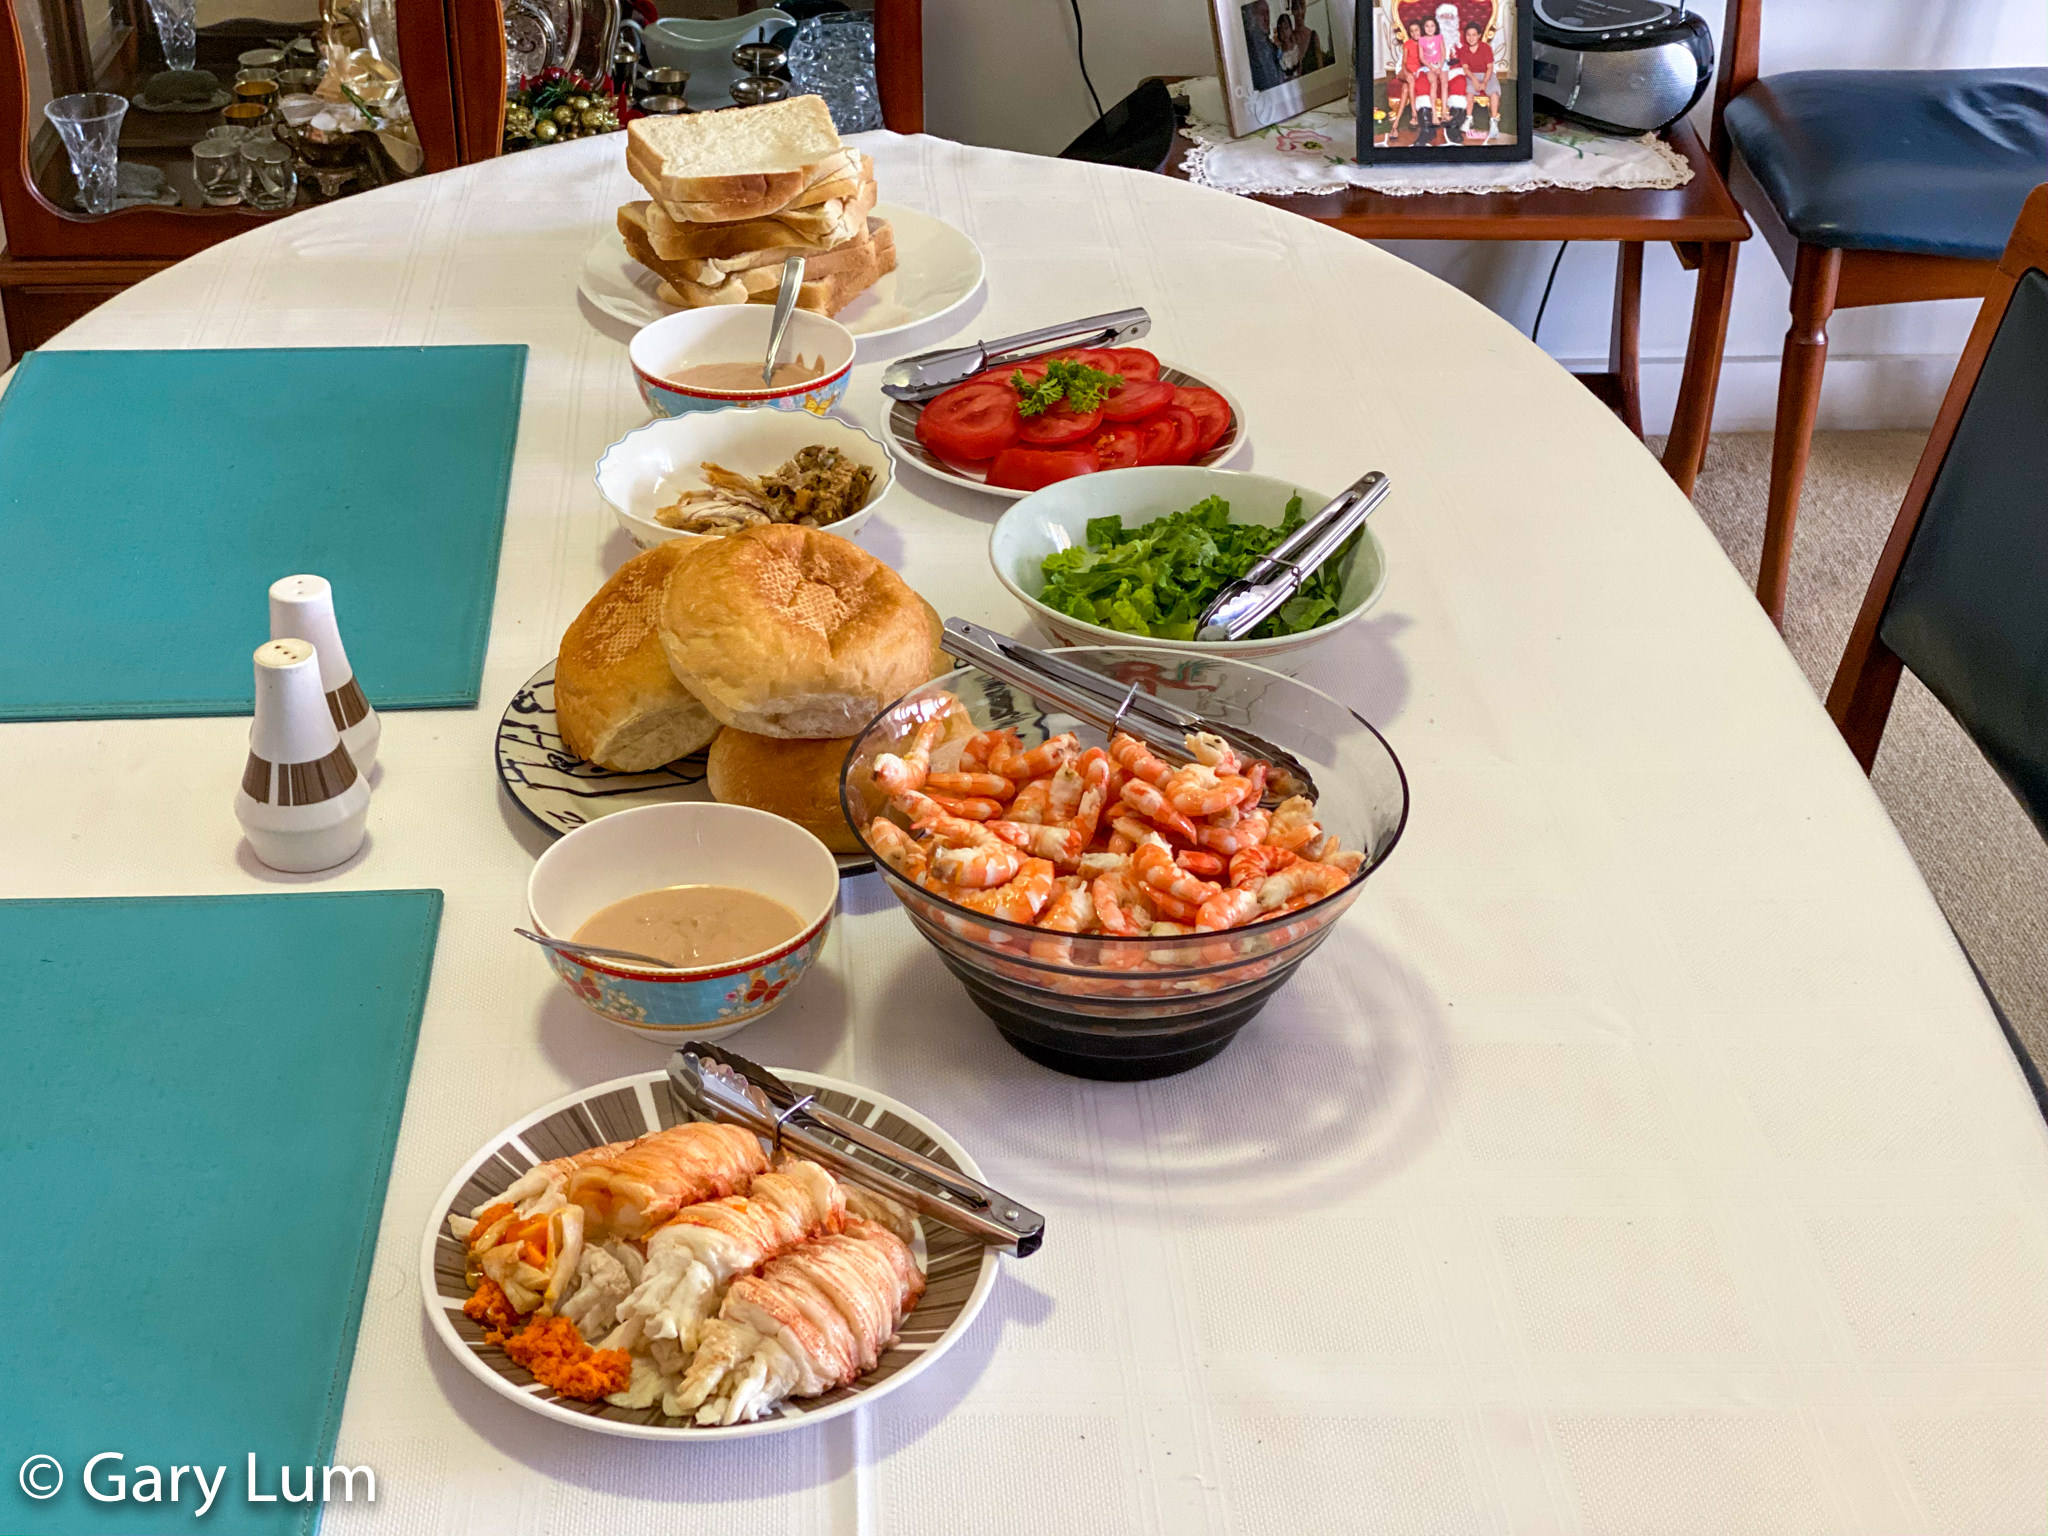 New Year's Day 2020 lunch. Moreton Bay Bugs and Endeavour prawns with fresh white bread. Gary Lum.